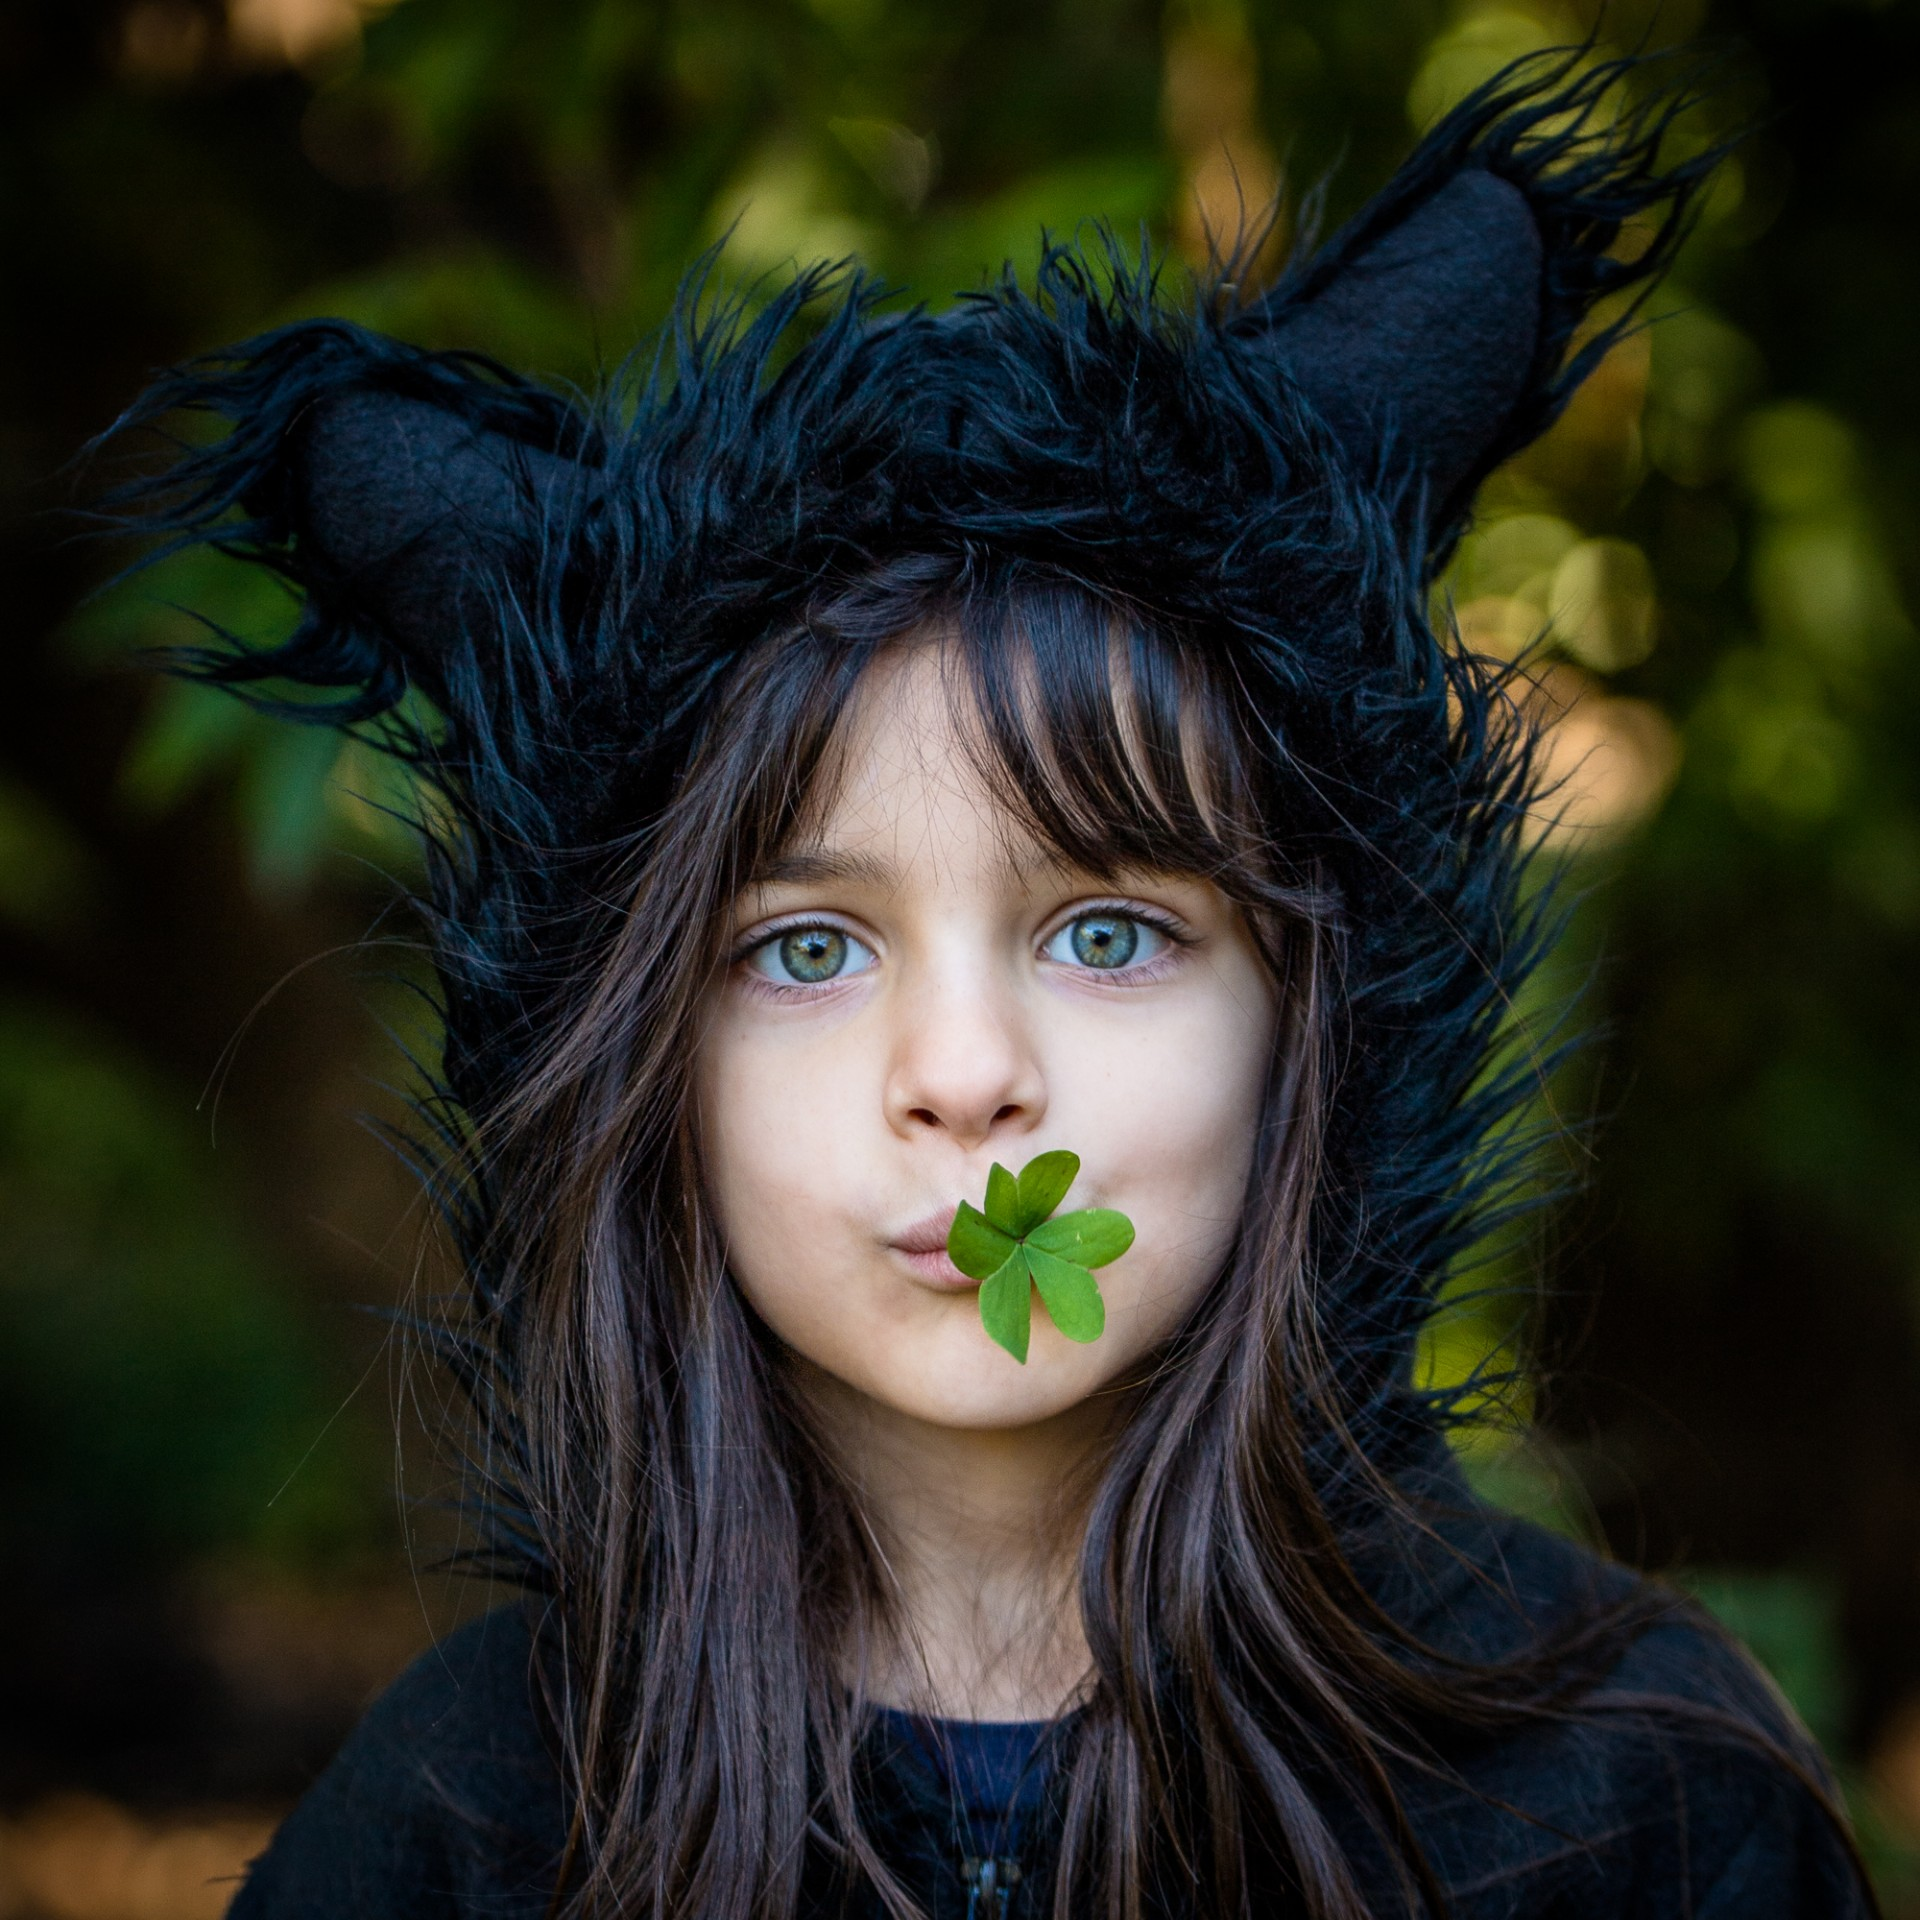 """Portraits:""""Wild Thing"""" by Paige Parsons"""